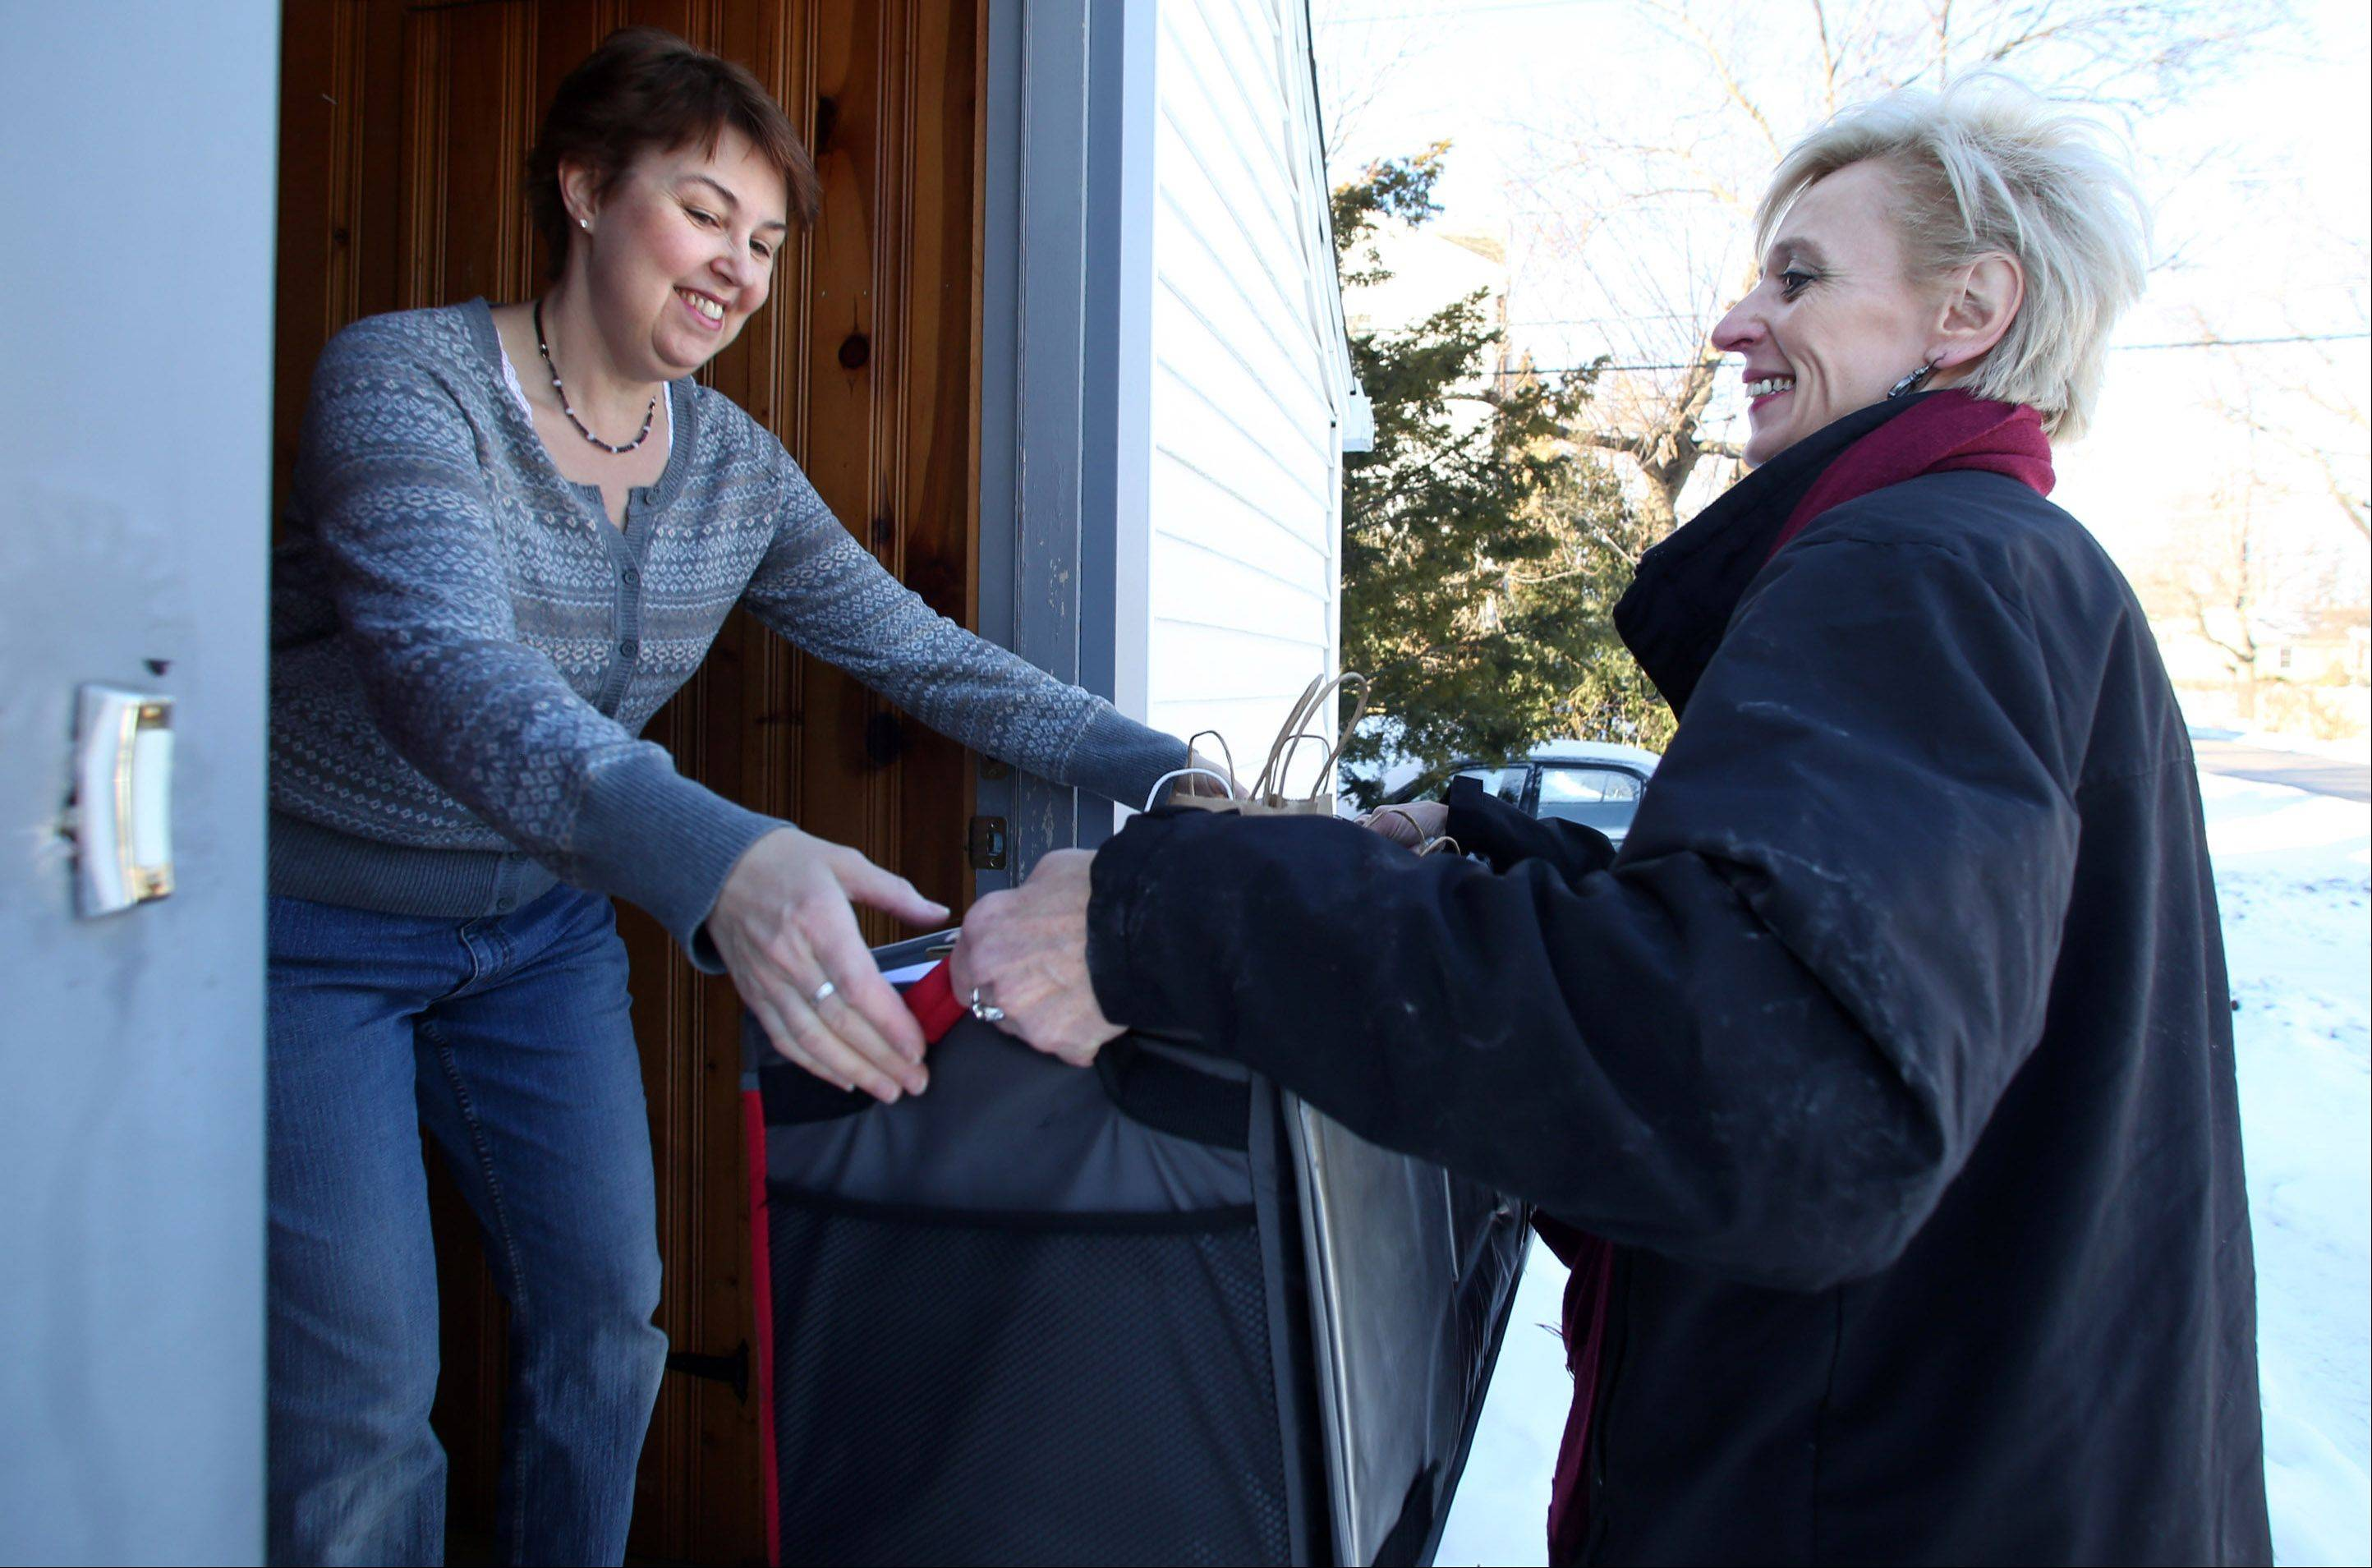 Donna Koranek of Lake Zurich, left, ordered groceries online from Artizone and gets her delivery from Doreen Melchiorre.